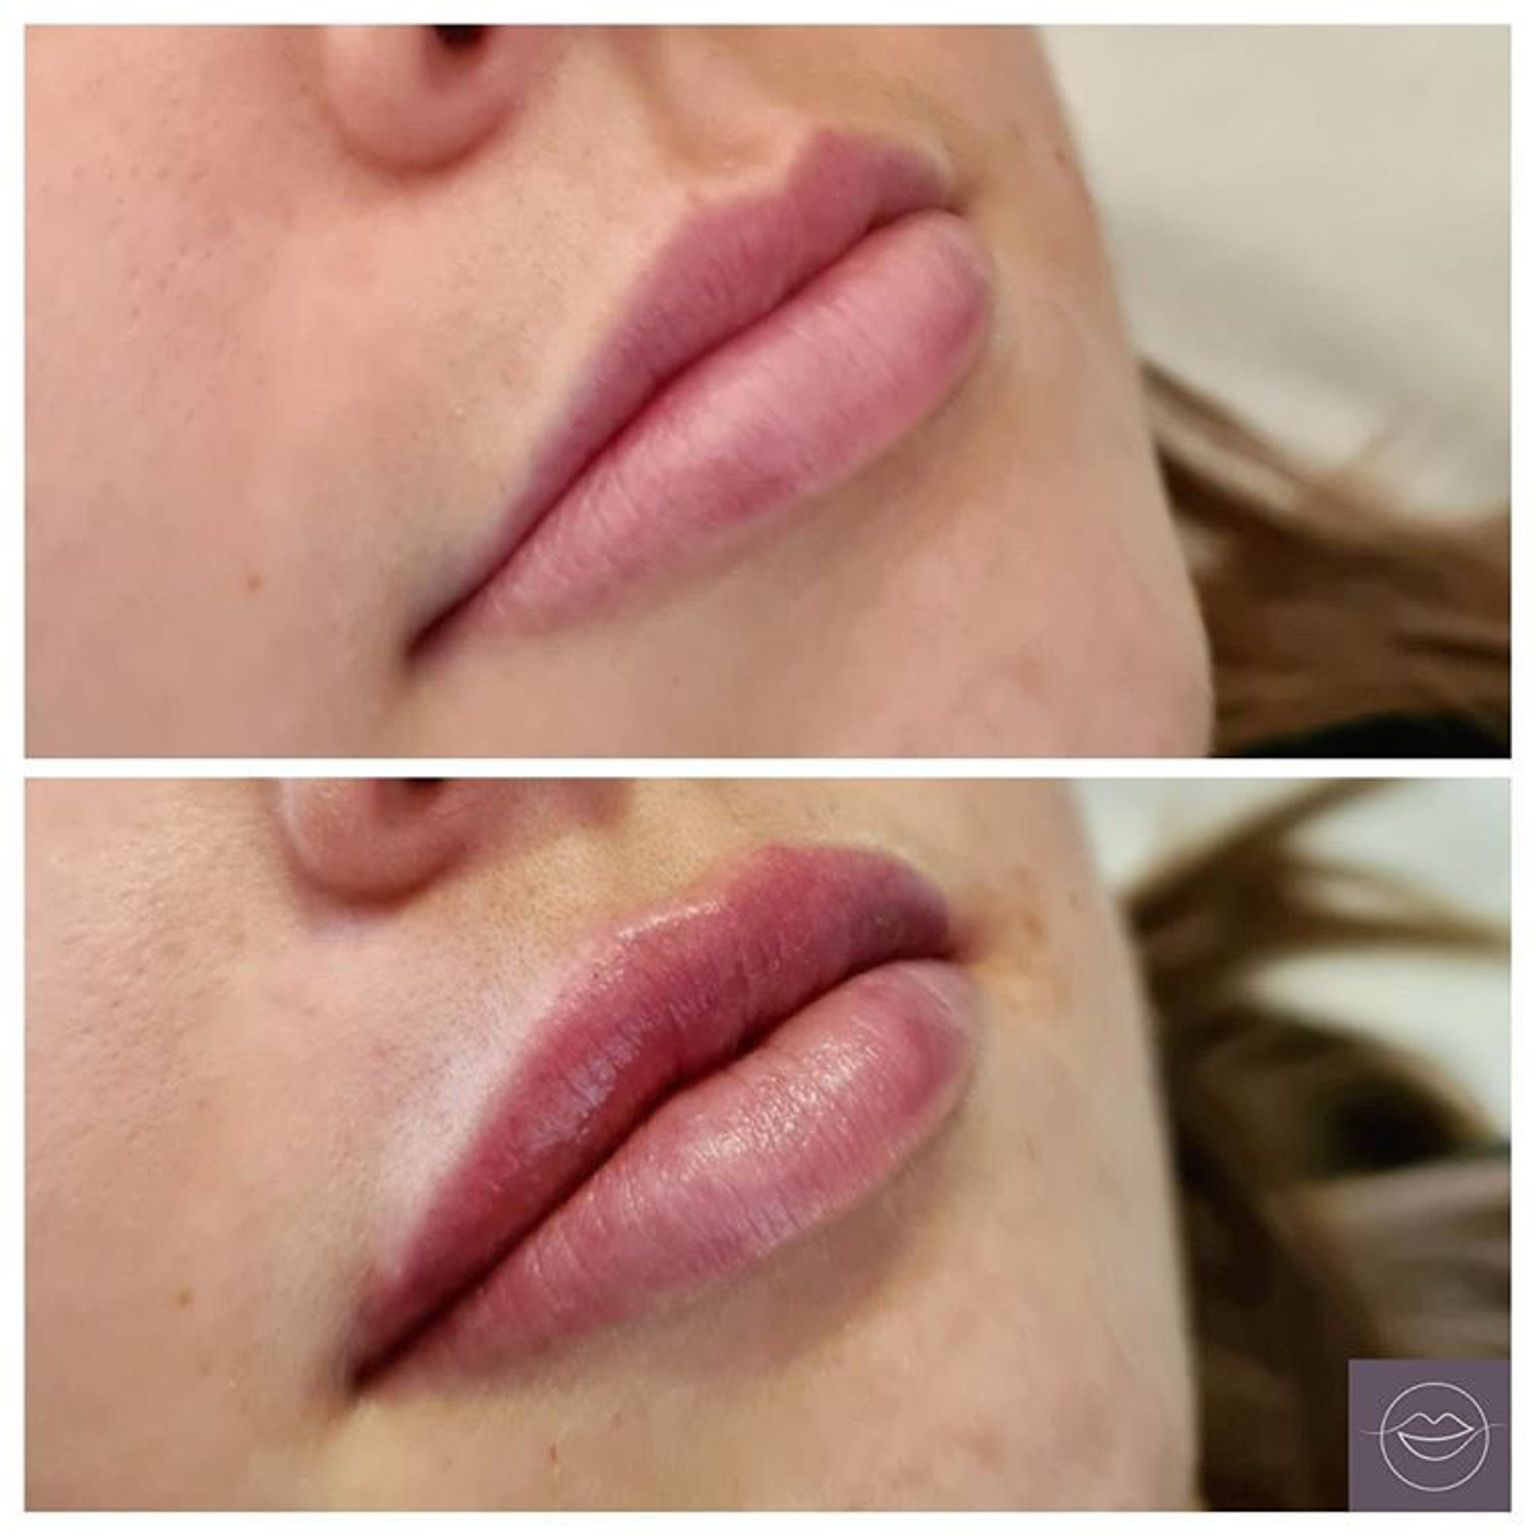 Charine Patel lip filler before and after - Glowday